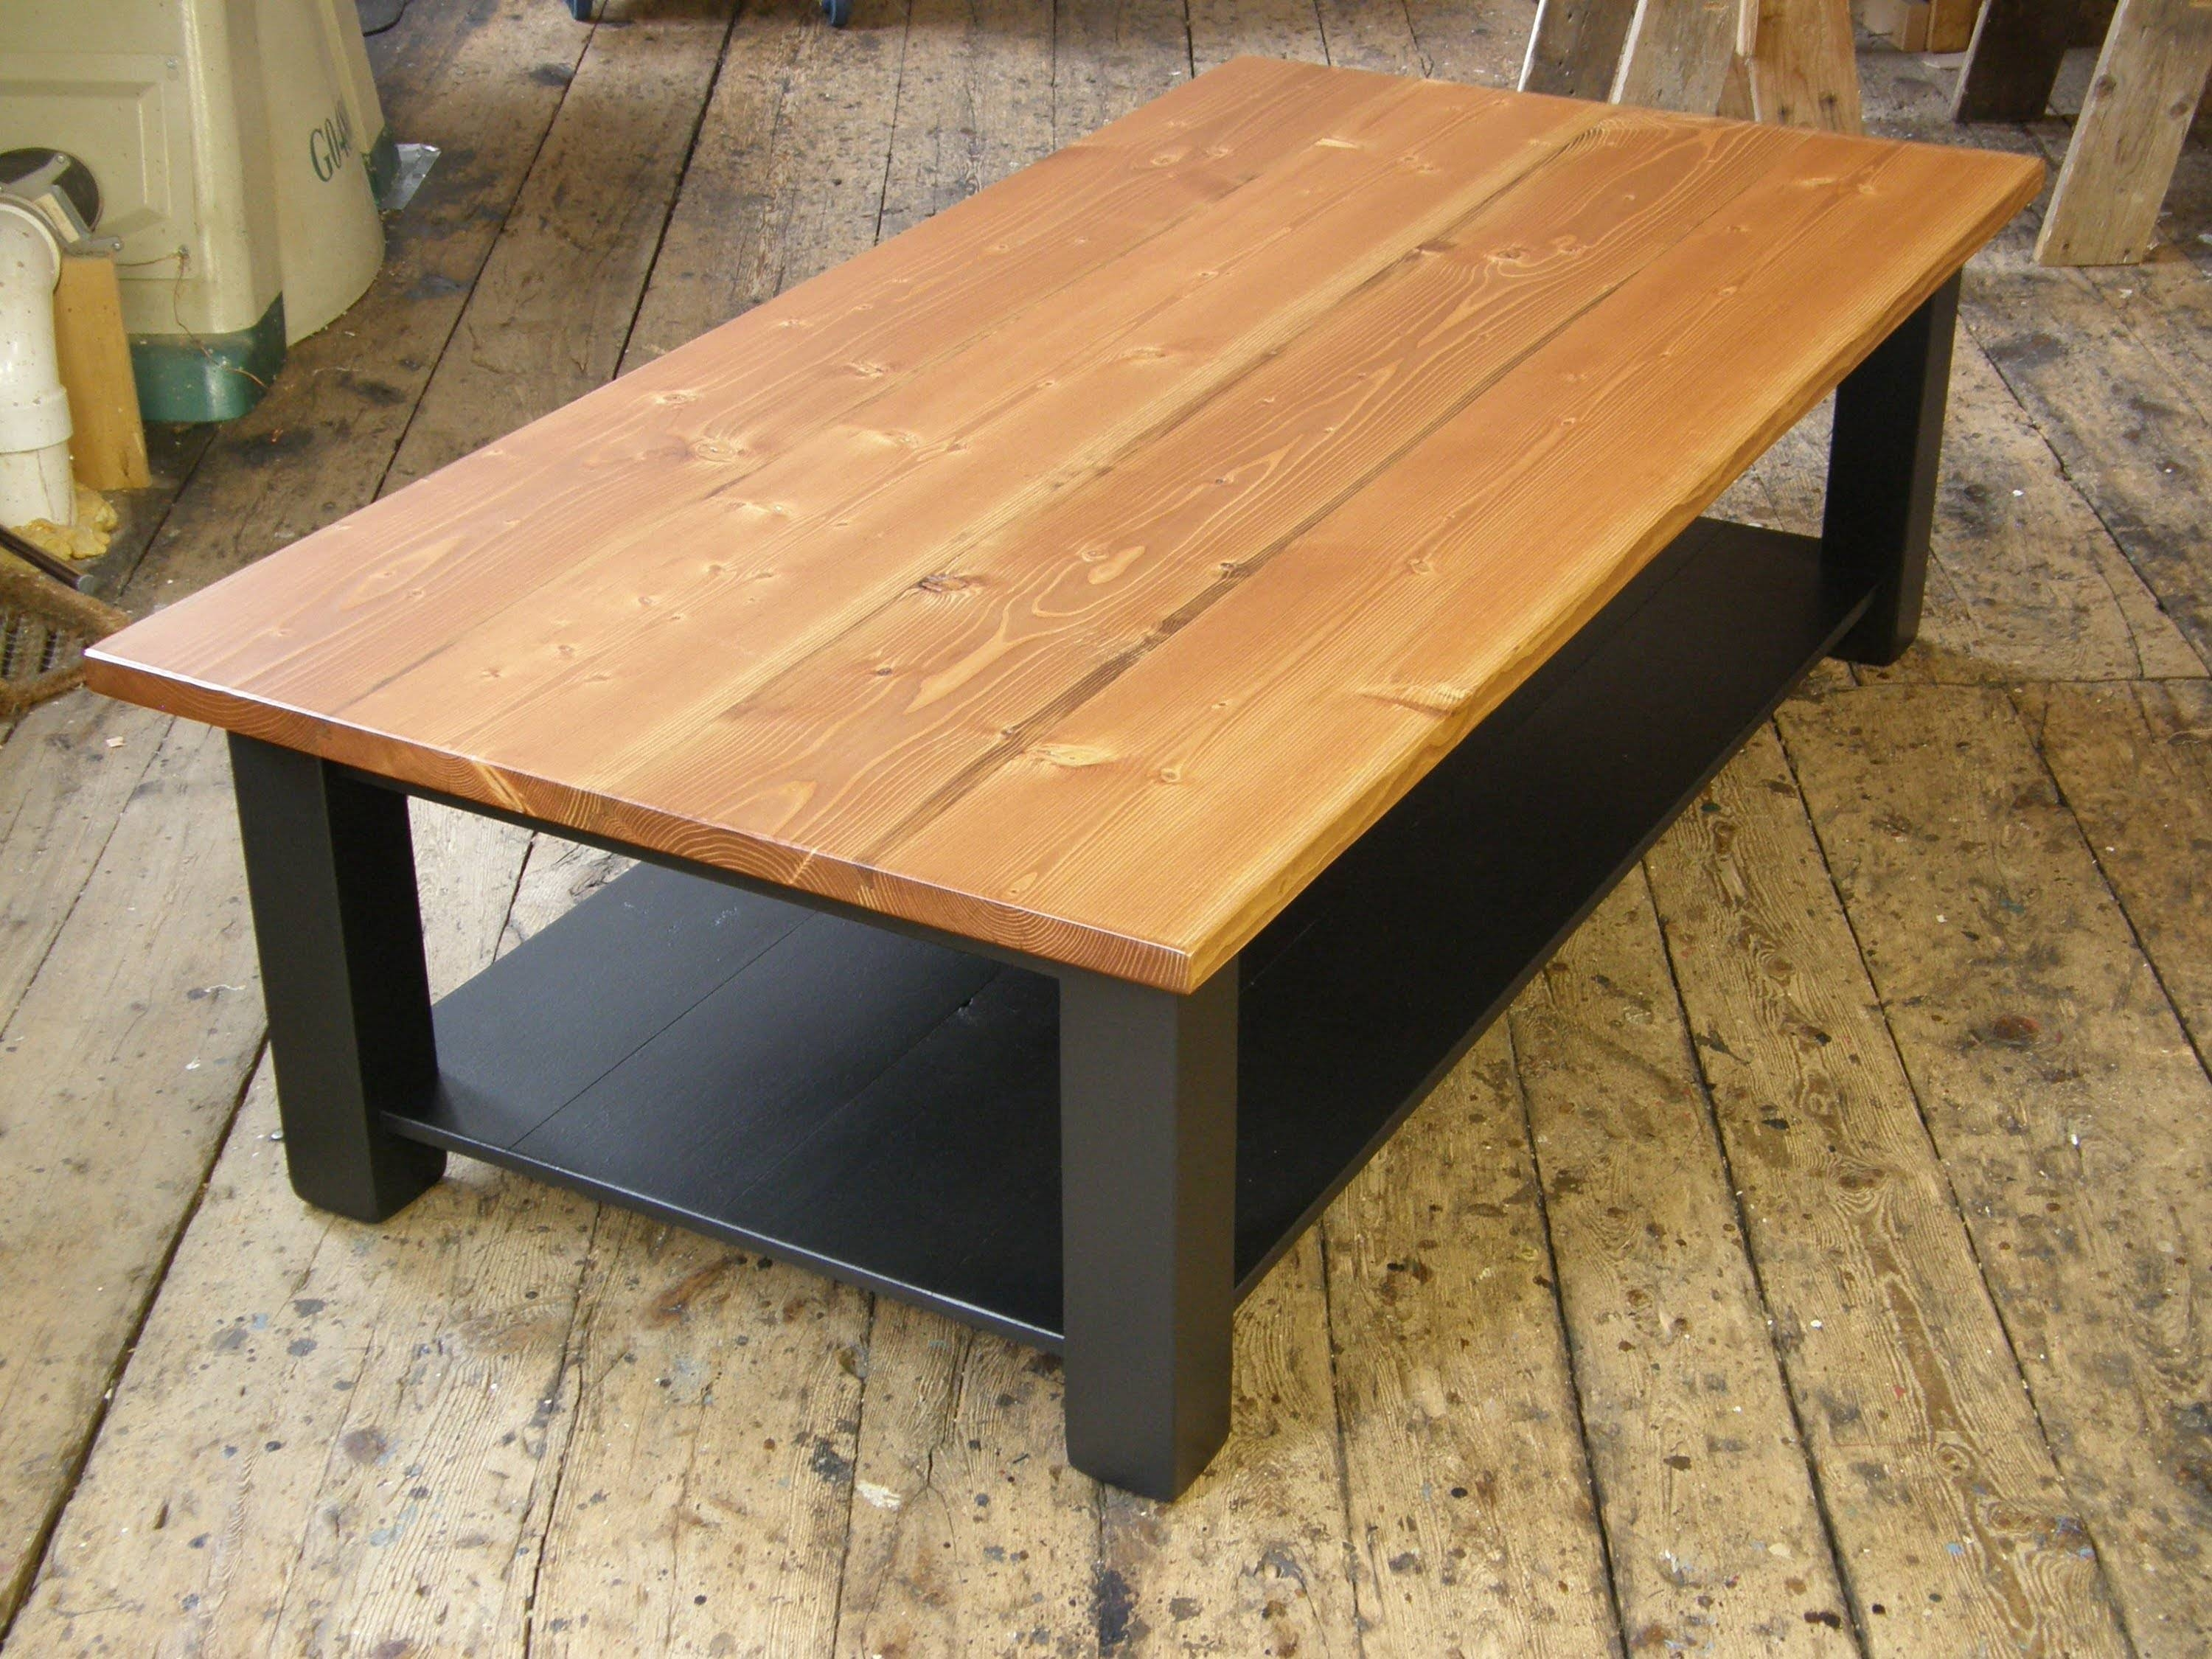 Coffee Table With A Shelf - Youtube for Rustic Coffee Tables With Bottom Shelf (Image 16 of 30)